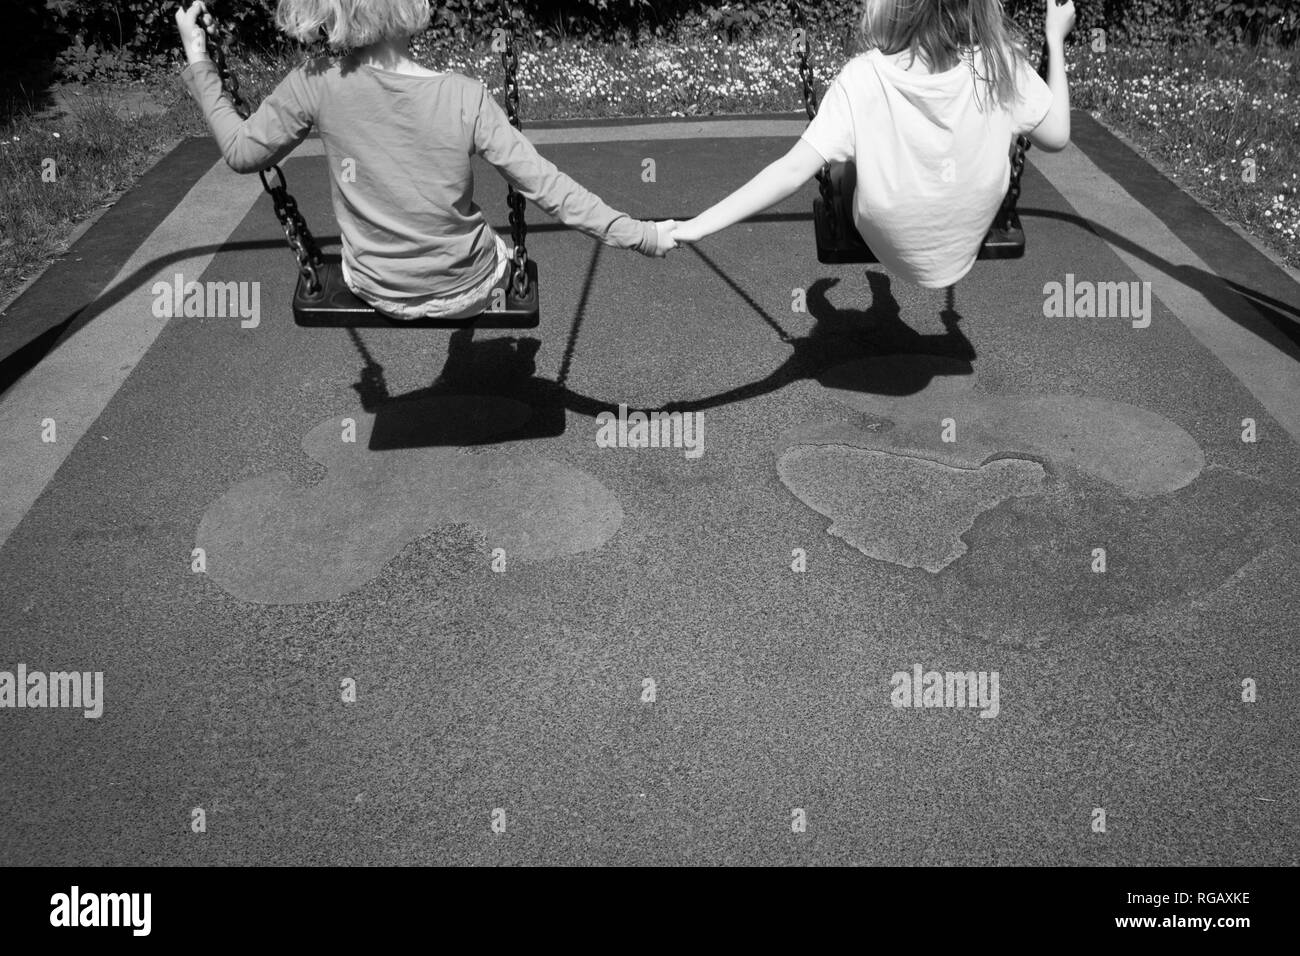 b;acl and white photograph of Two caucasion girls playing on swings in a park in a playground Stock Photo